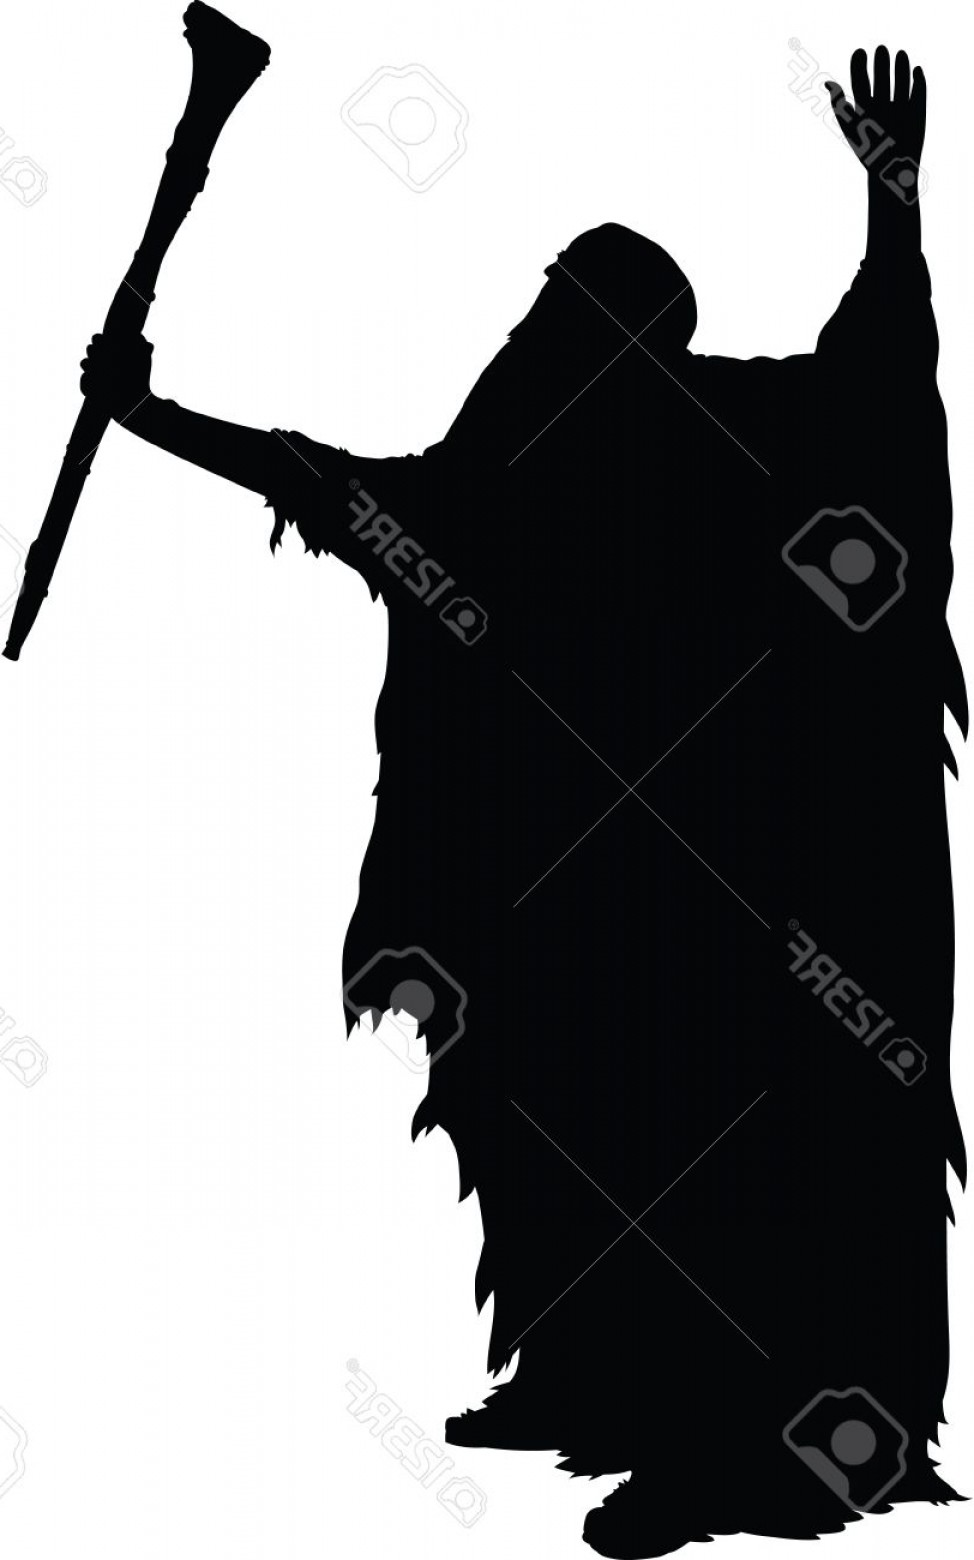 Wizard Silhouette Vector: Photostock Vector A Silhouette Of An Old Wizard Raising His Arms And Using His Power